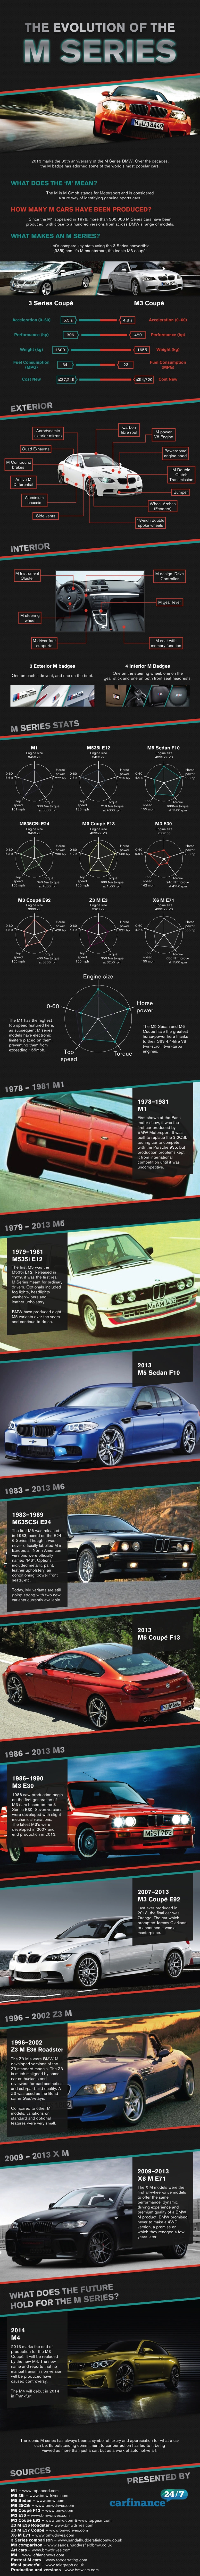 BMW M Division history